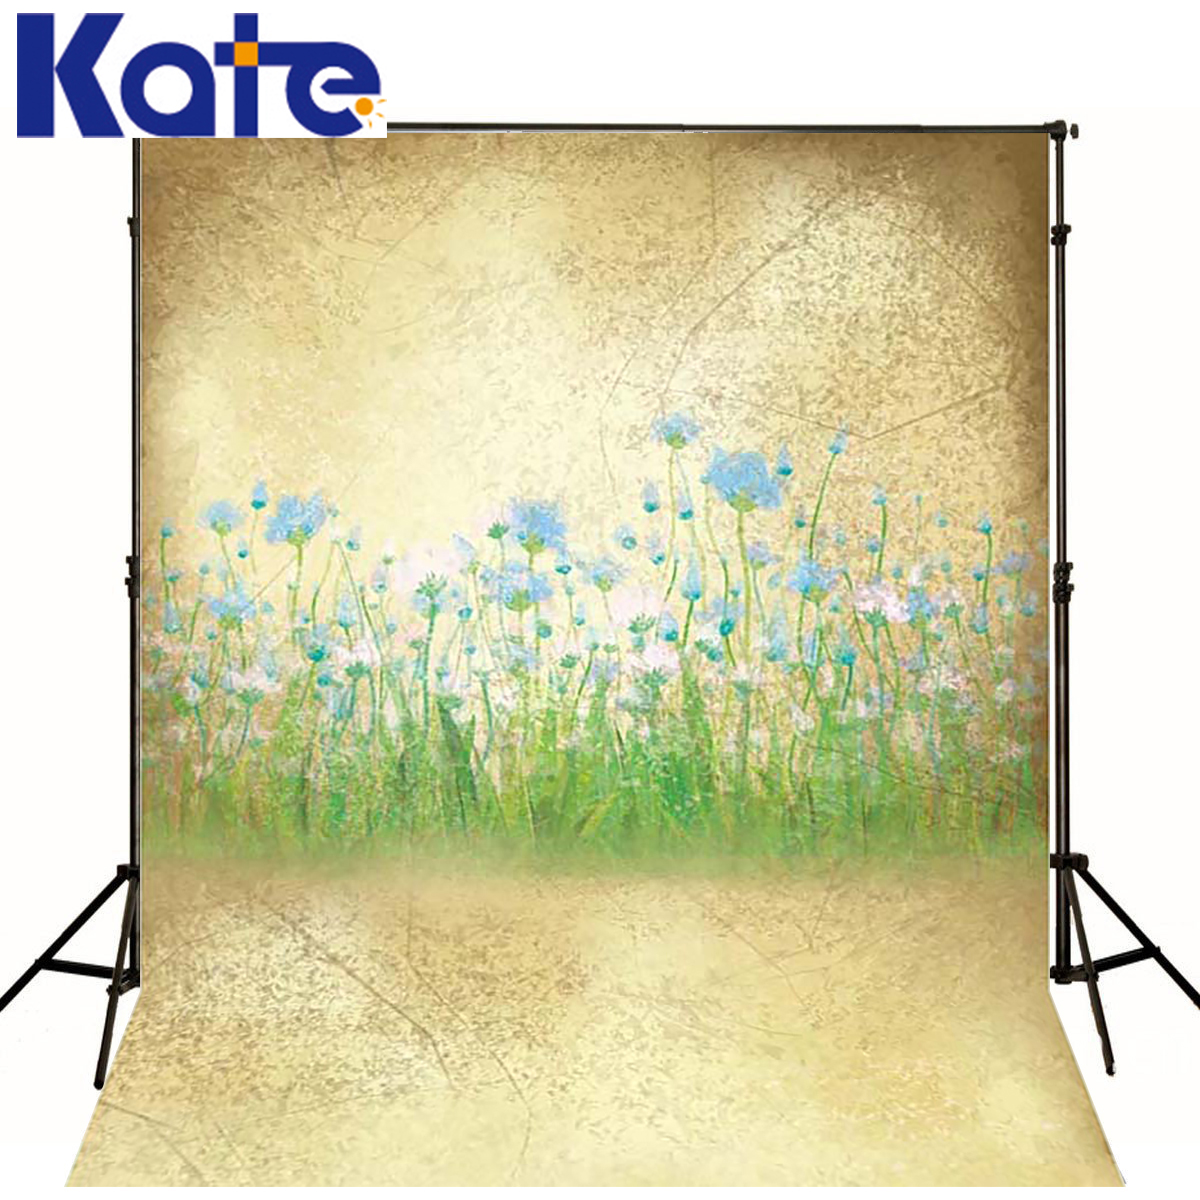 KATE Photo Background Dream Field Photography Backdrops Newborn Grass Blue Flowers Backdrop Scenery Backdrops for Photo Studio kate photo background scenery